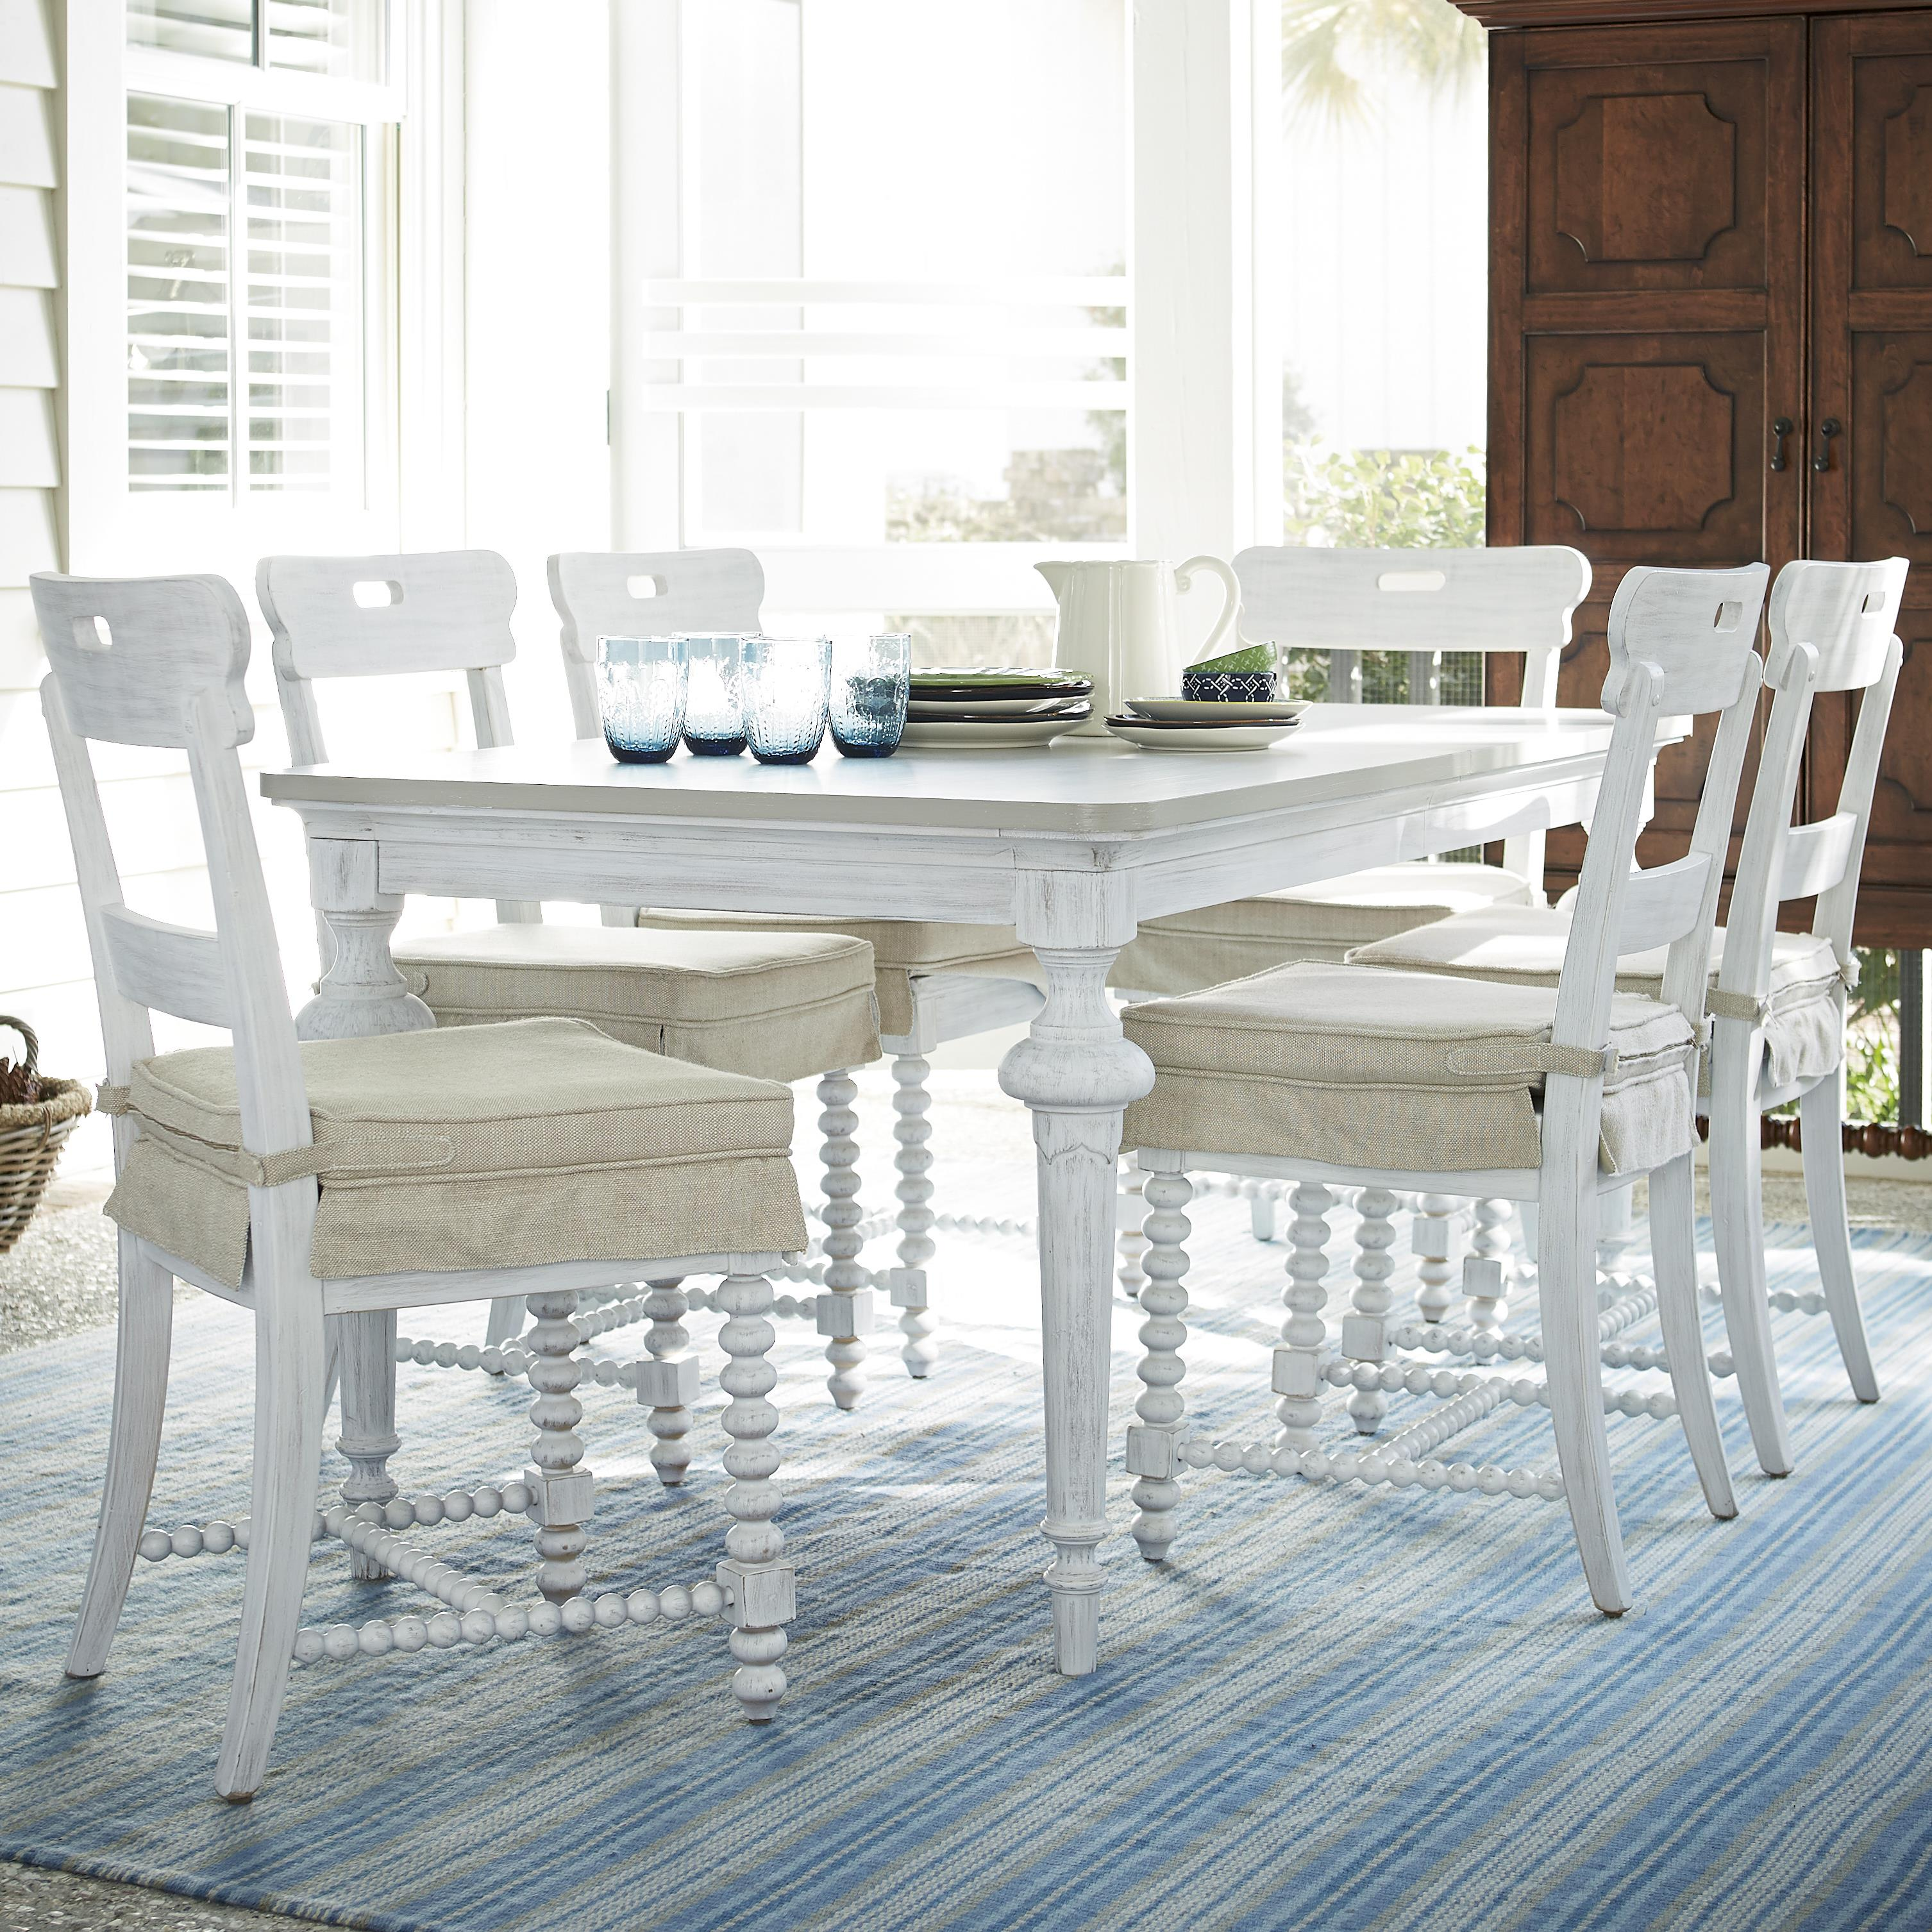 Paula Deen By Universal Dogwood Piece Dining Set With Kitchen